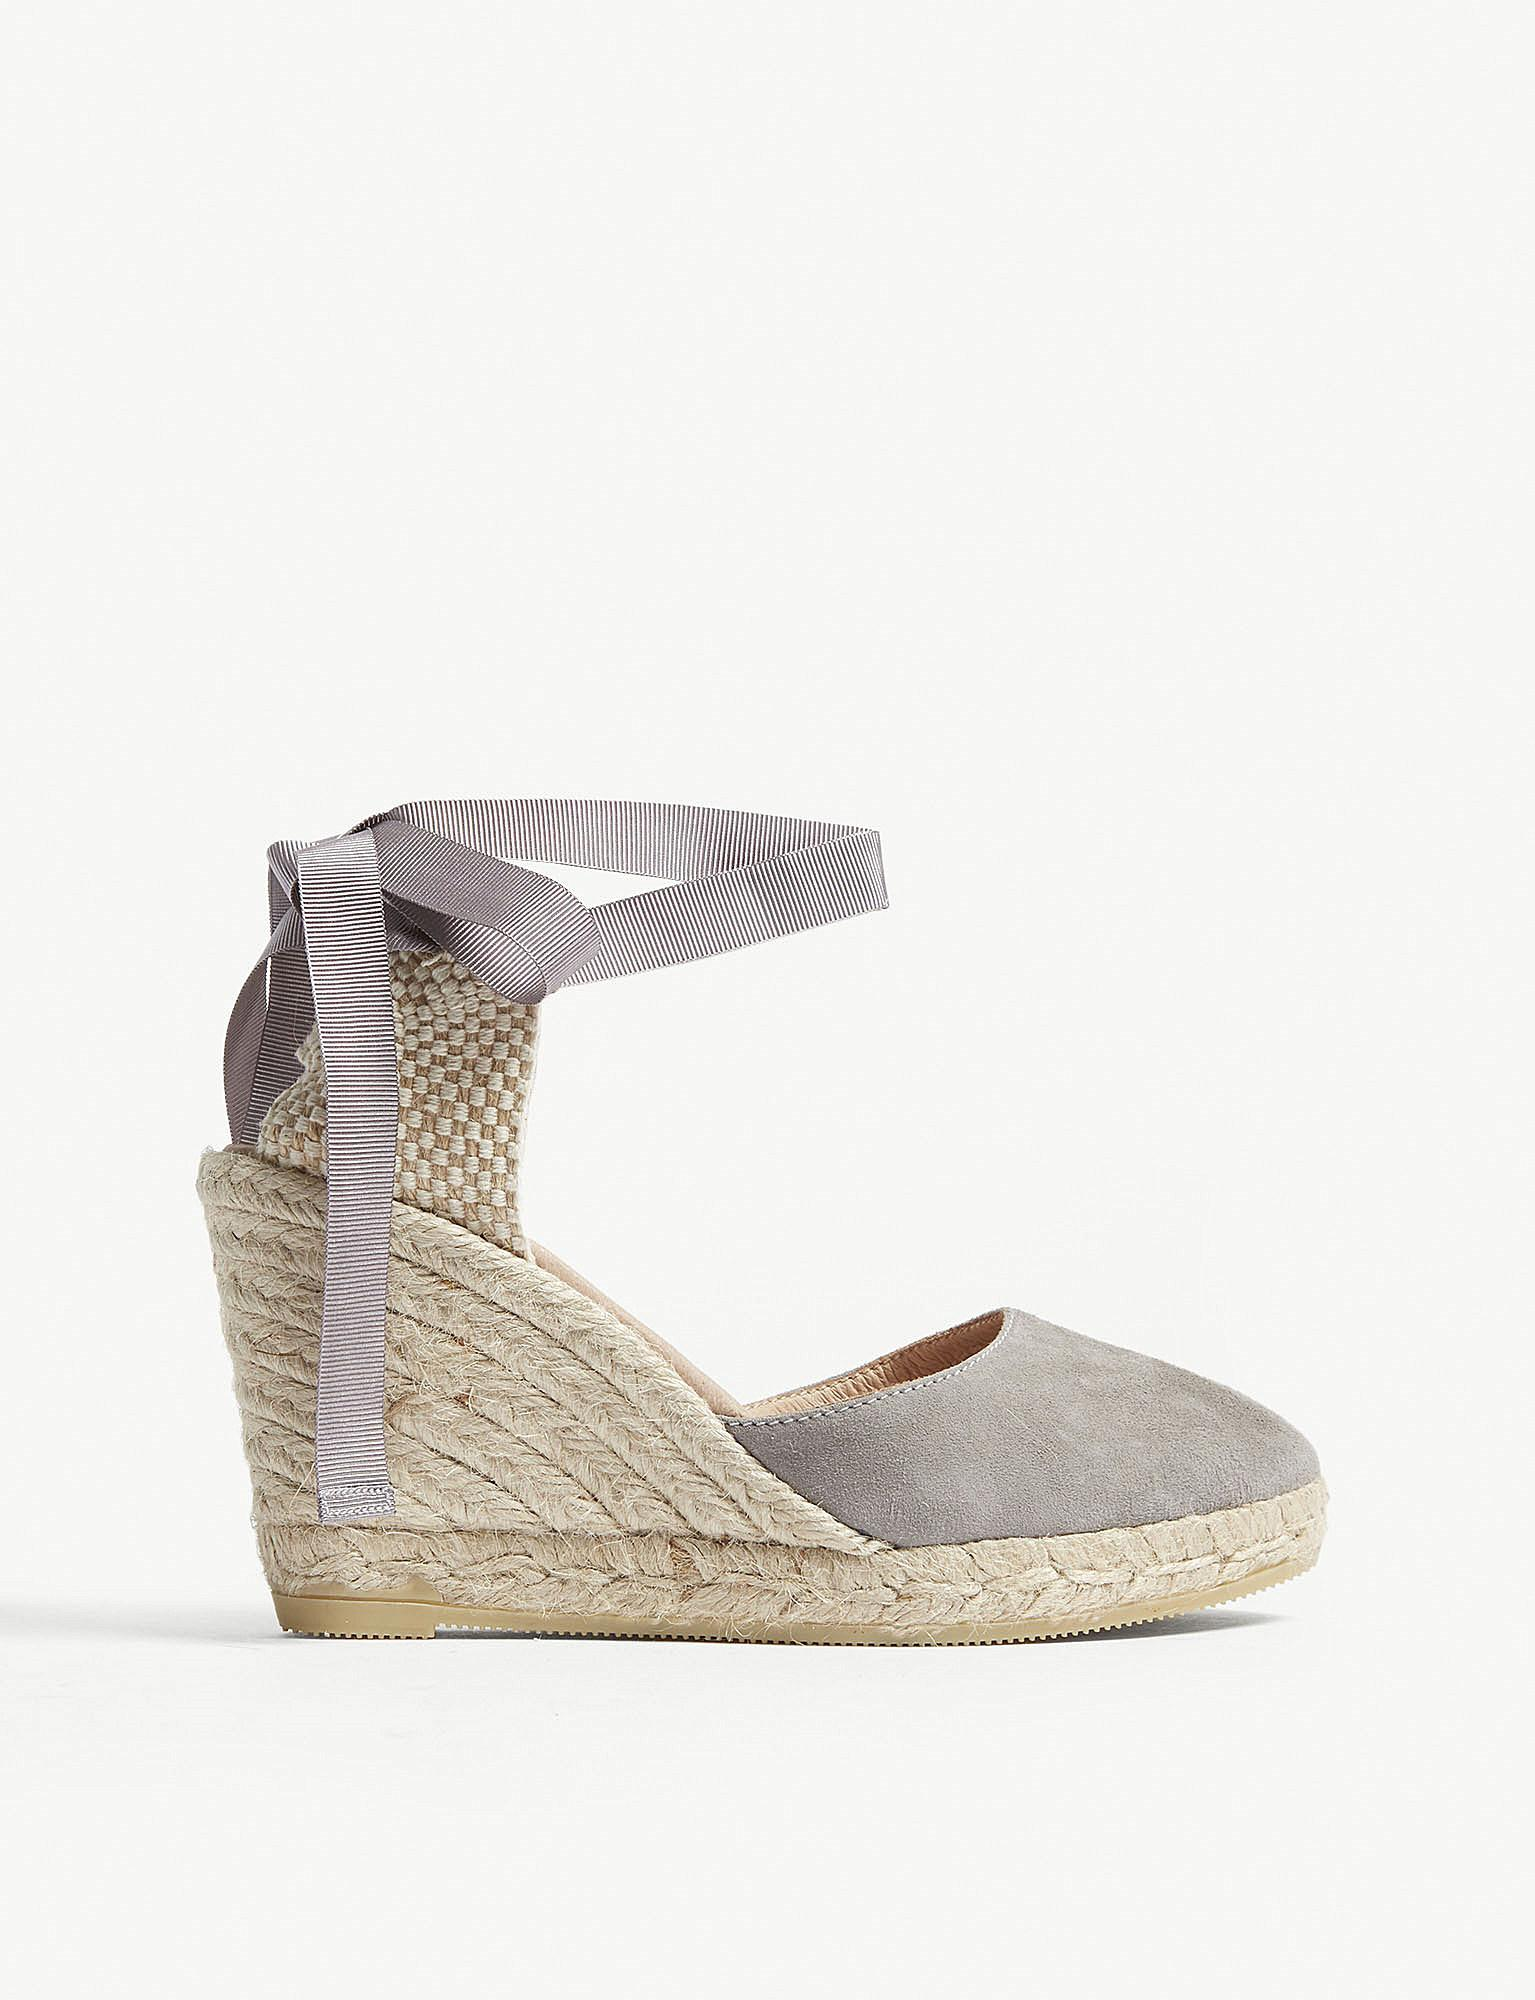 09fa7ce7b192 Lyst - Office Espadrille Wedges in Gray